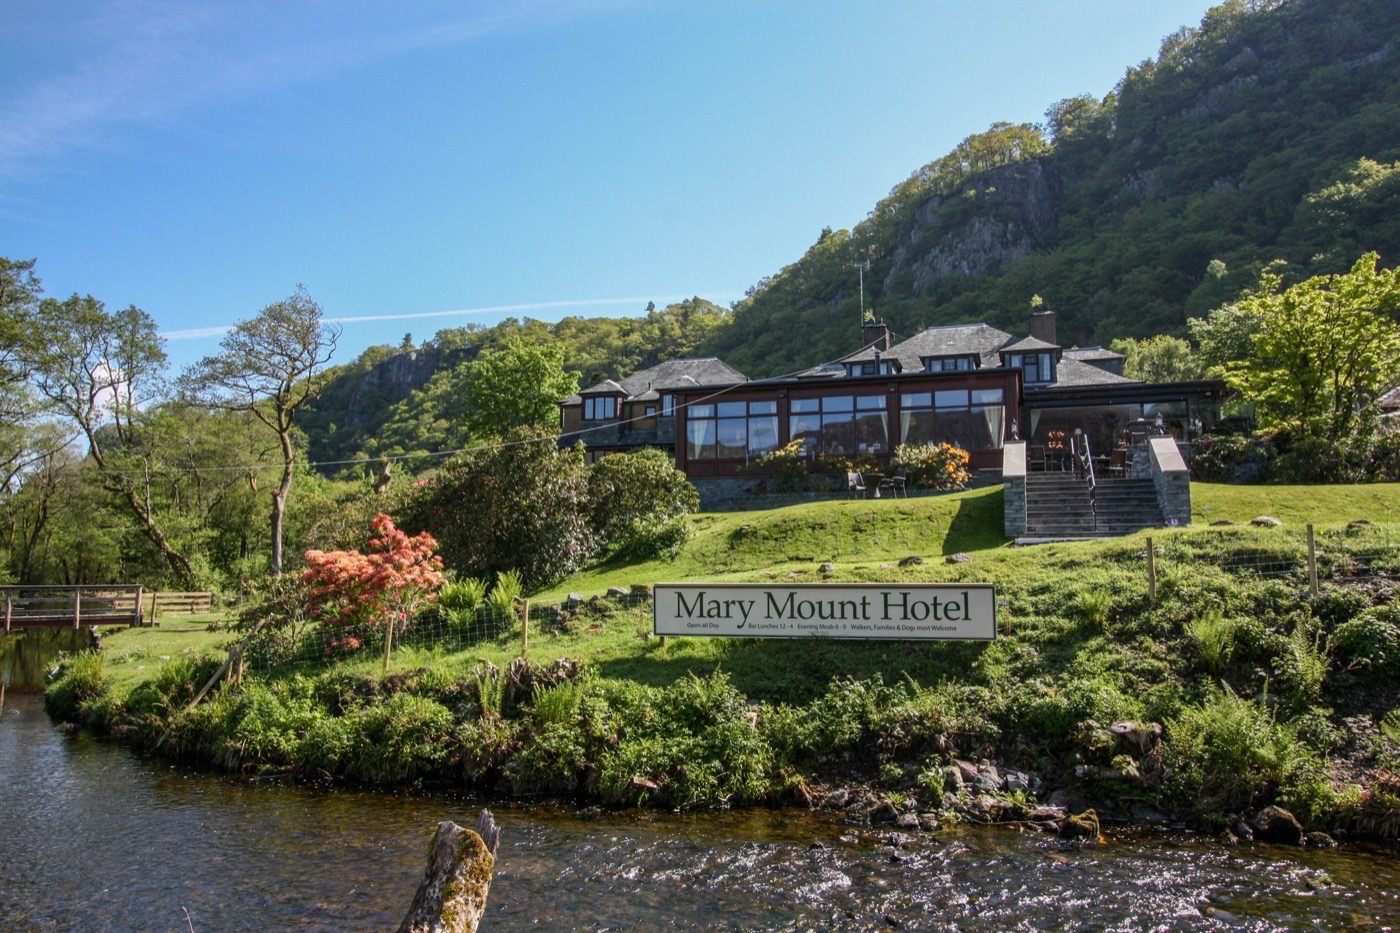 mary-mount-hotel-accommodation-derwentwater-lake-district-48_1400px.jpg